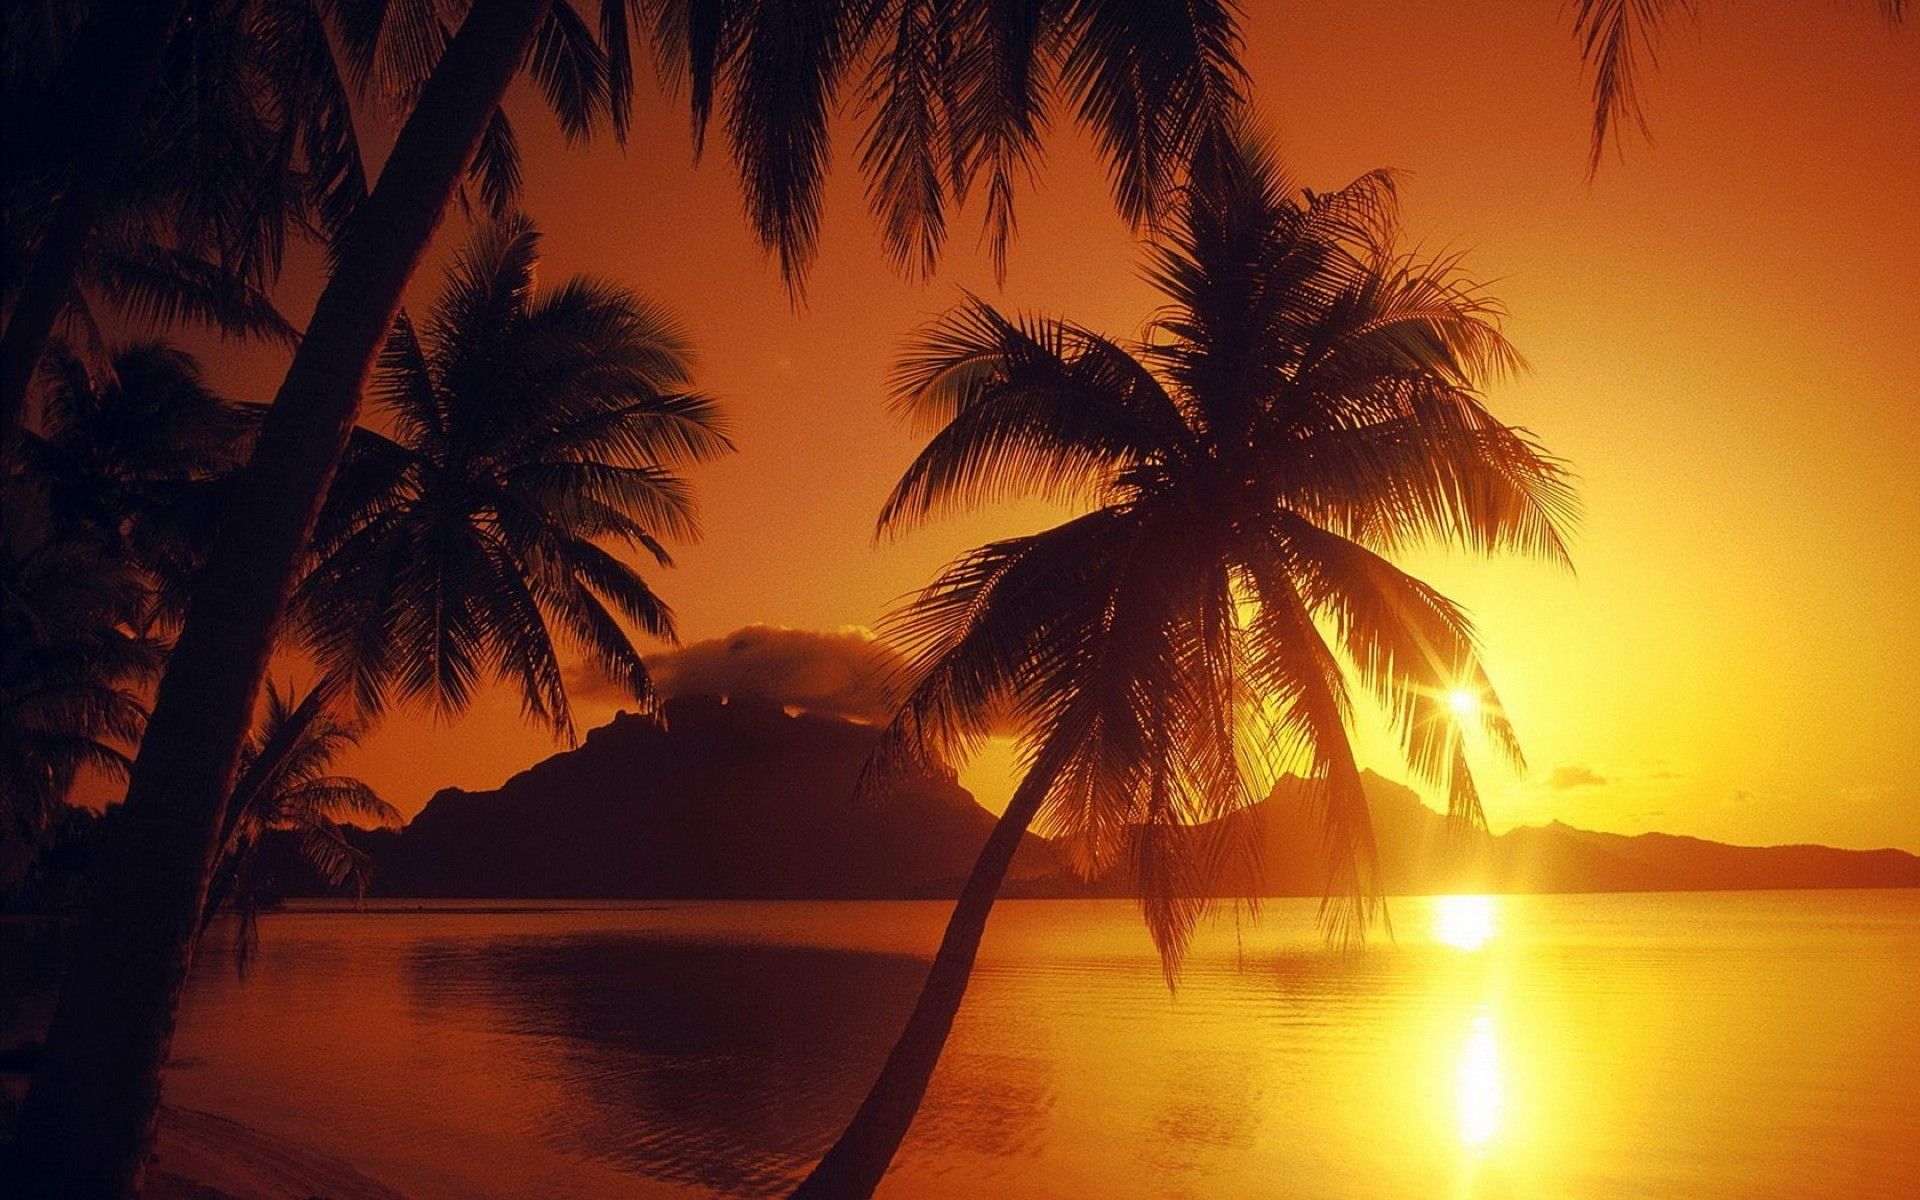 the sunset and sunrise sunset beach sun tropical water dawn dusk exotic sand backlit silhouette evening palm ocean seashore idyllic seascape fair weather summer